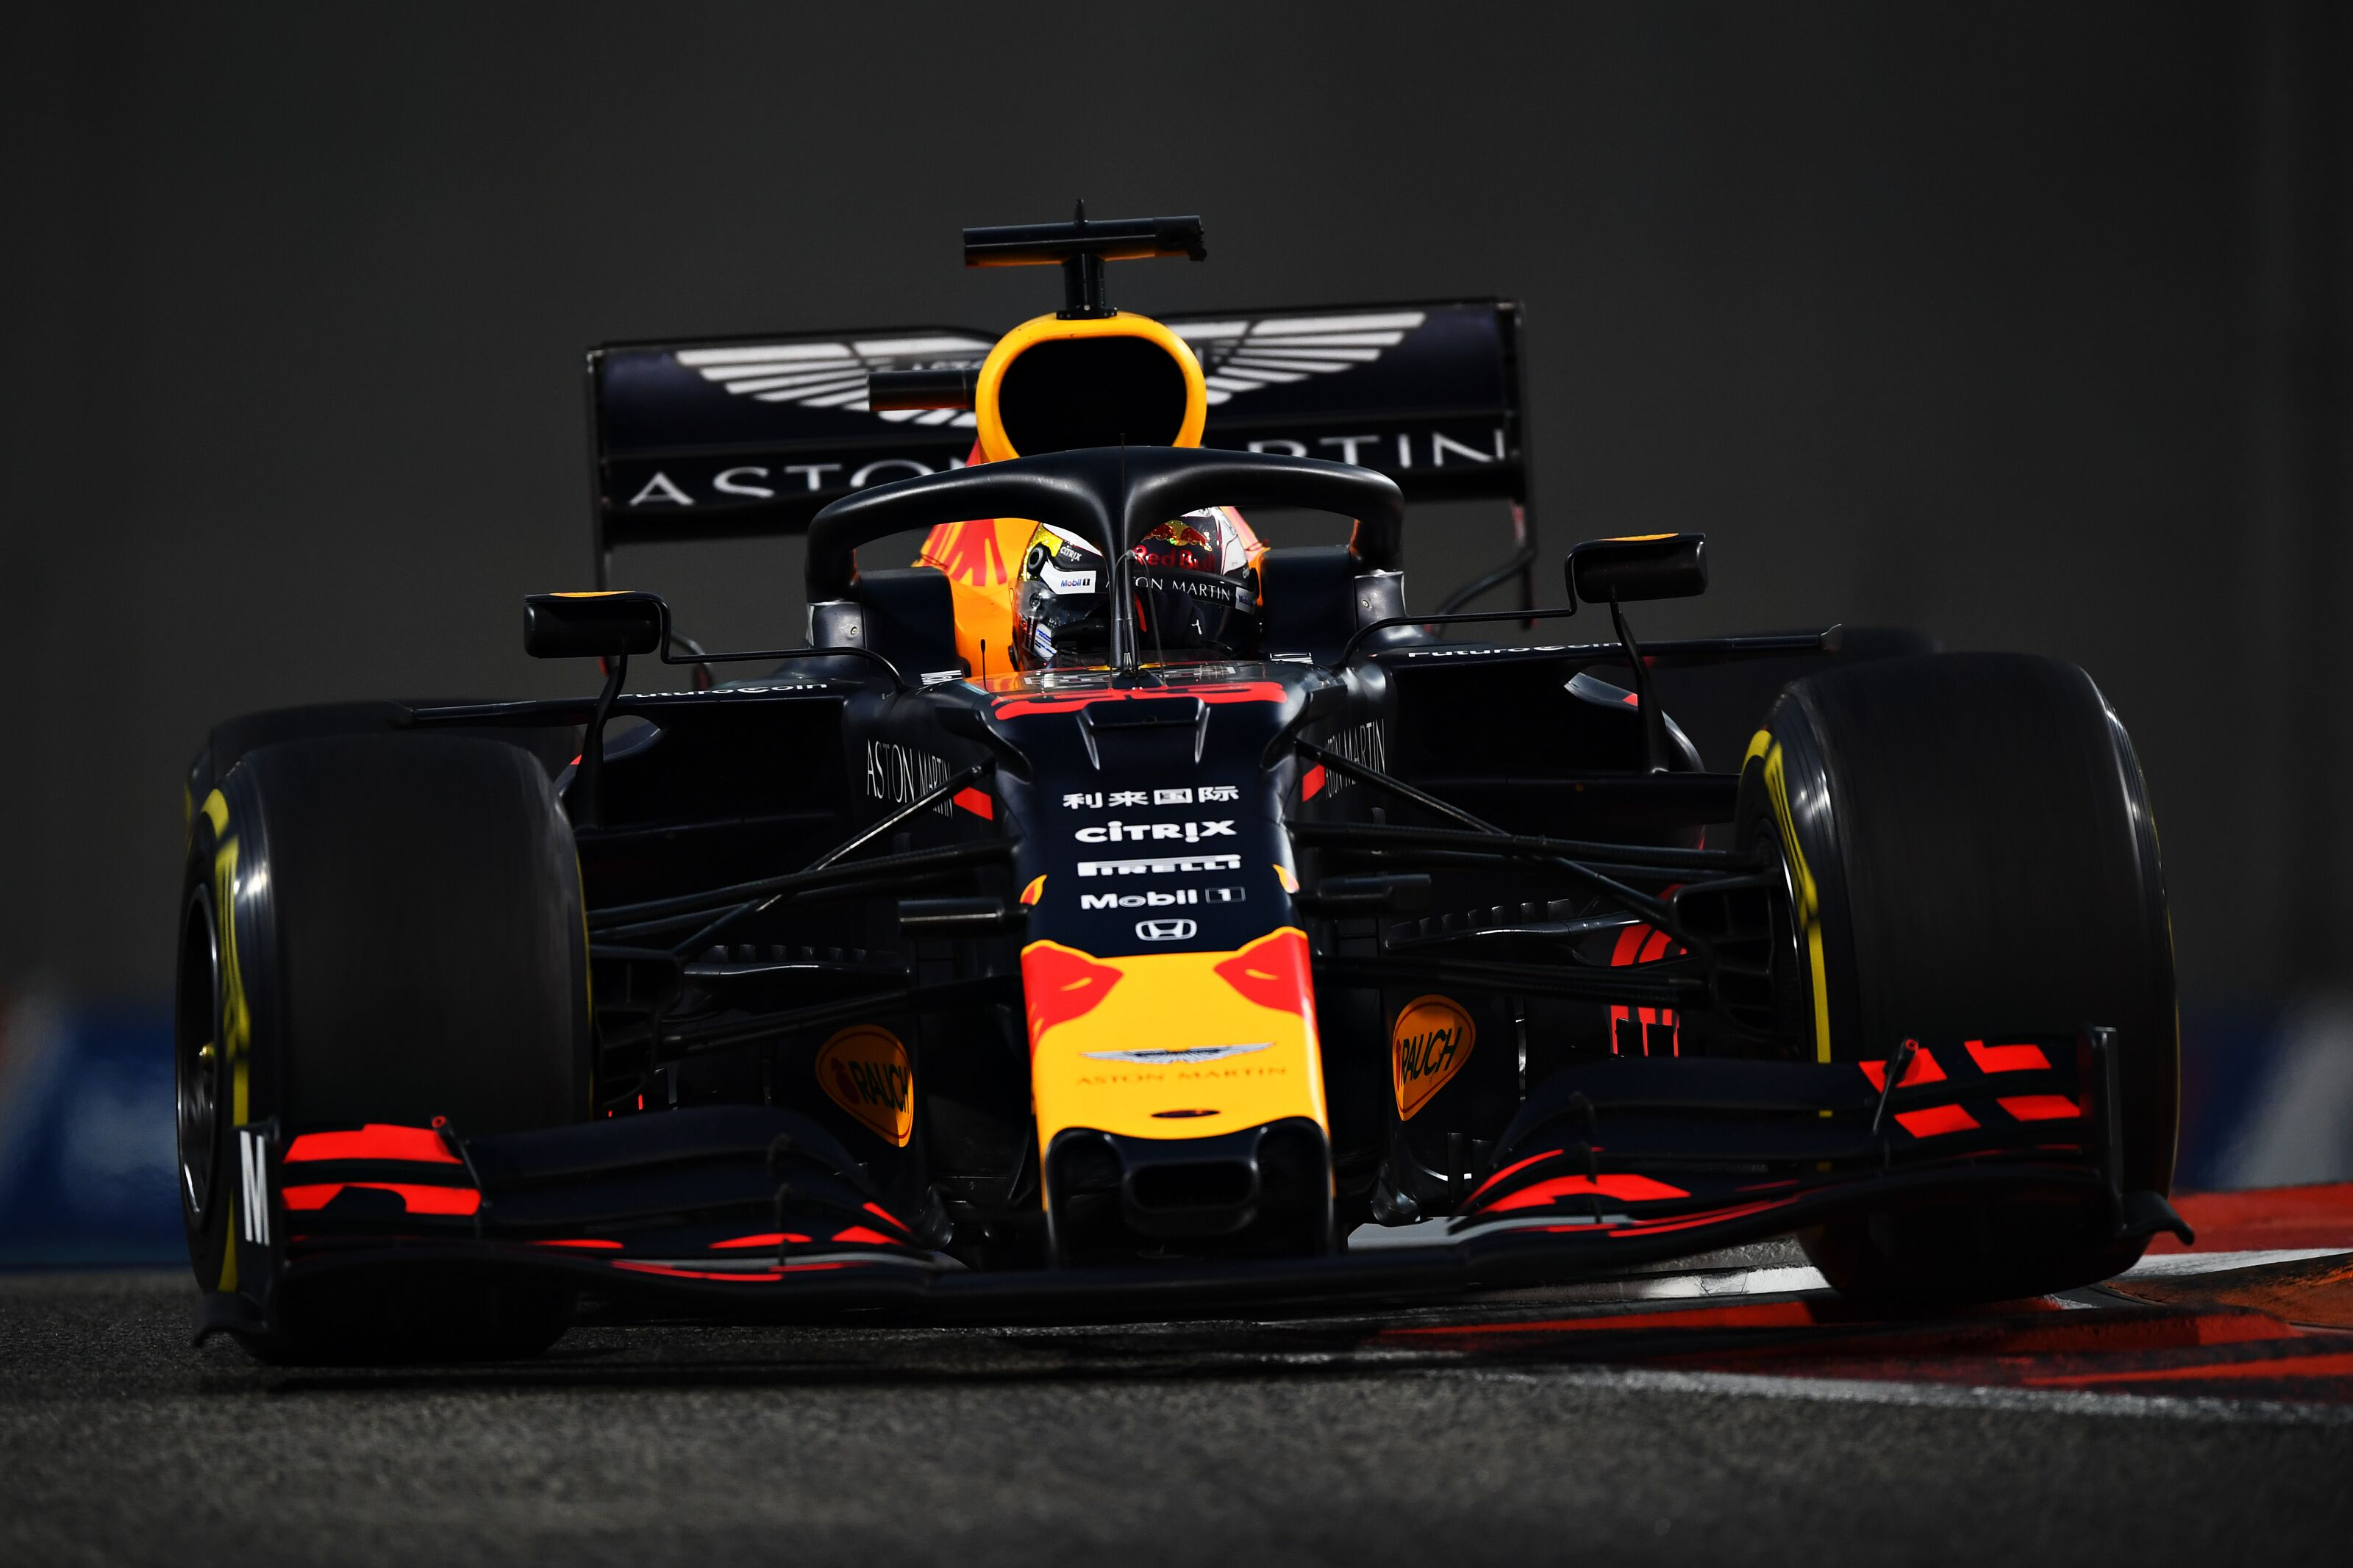 Formula 1: How will Max Verstappen's Red Bull deal impact Silly Season?